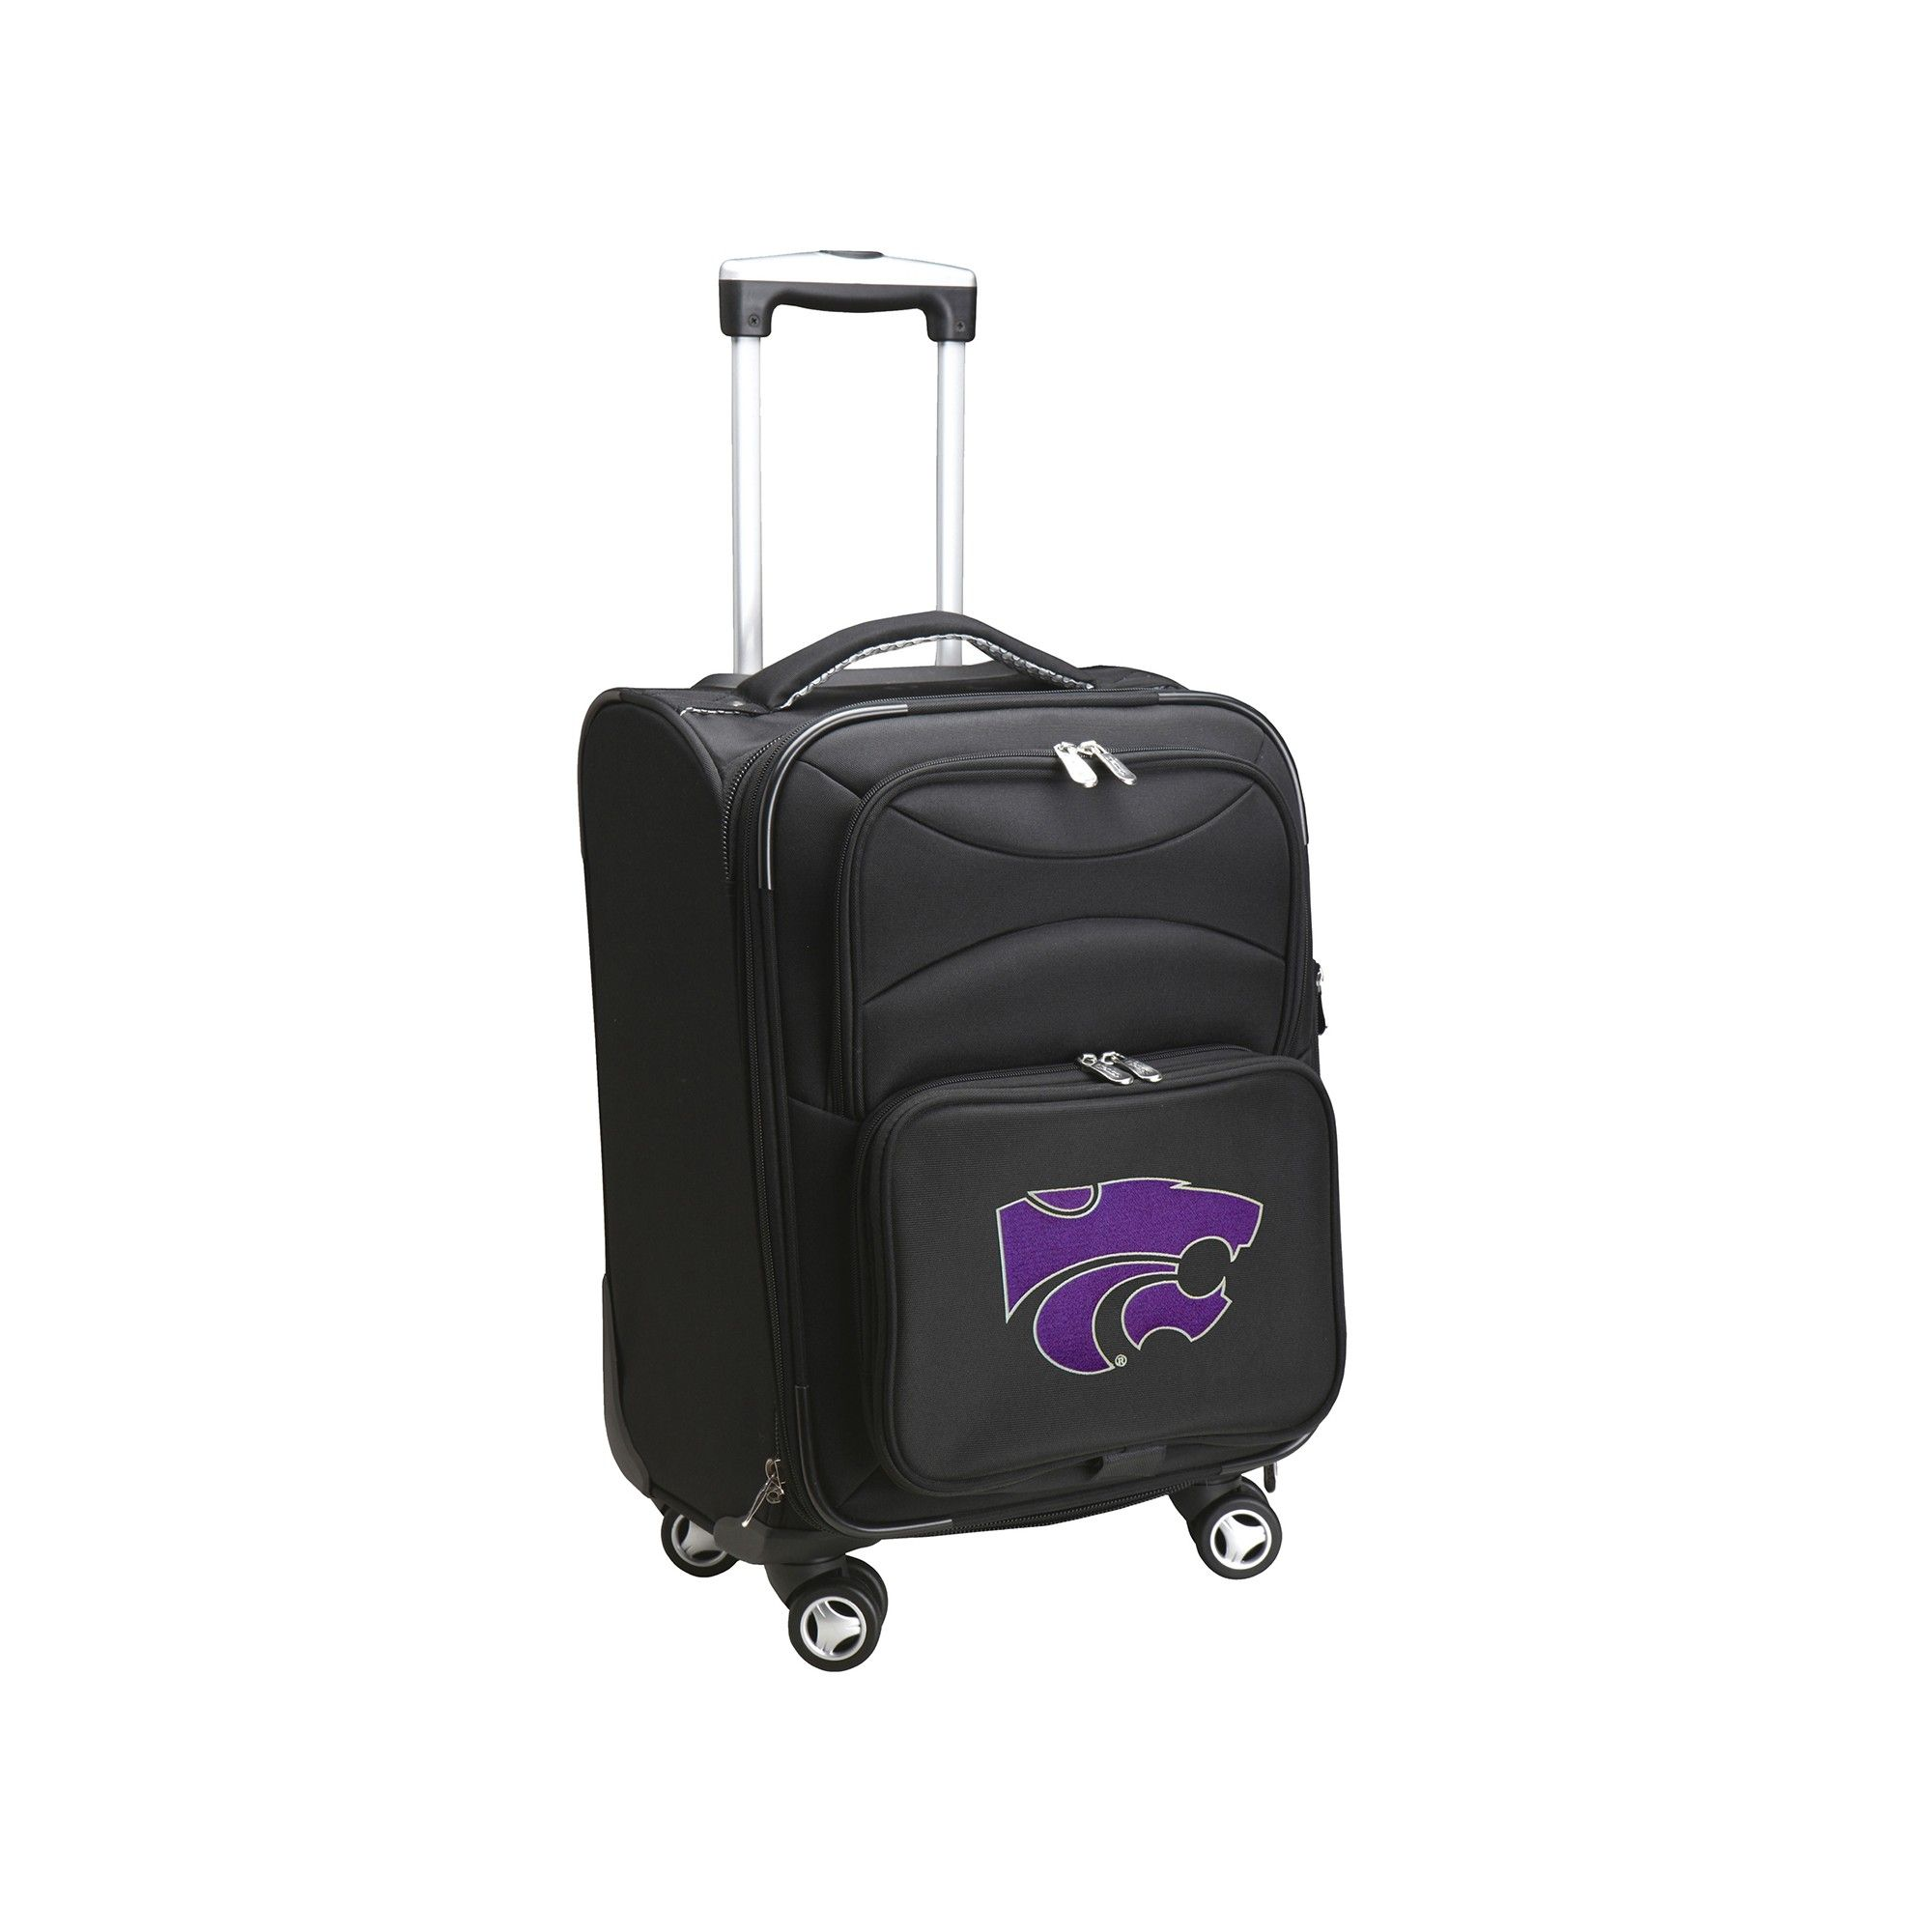 205cb97d1473 NCAA Kansas State Wildcats Spinner Carry On Suitcase | Products ...